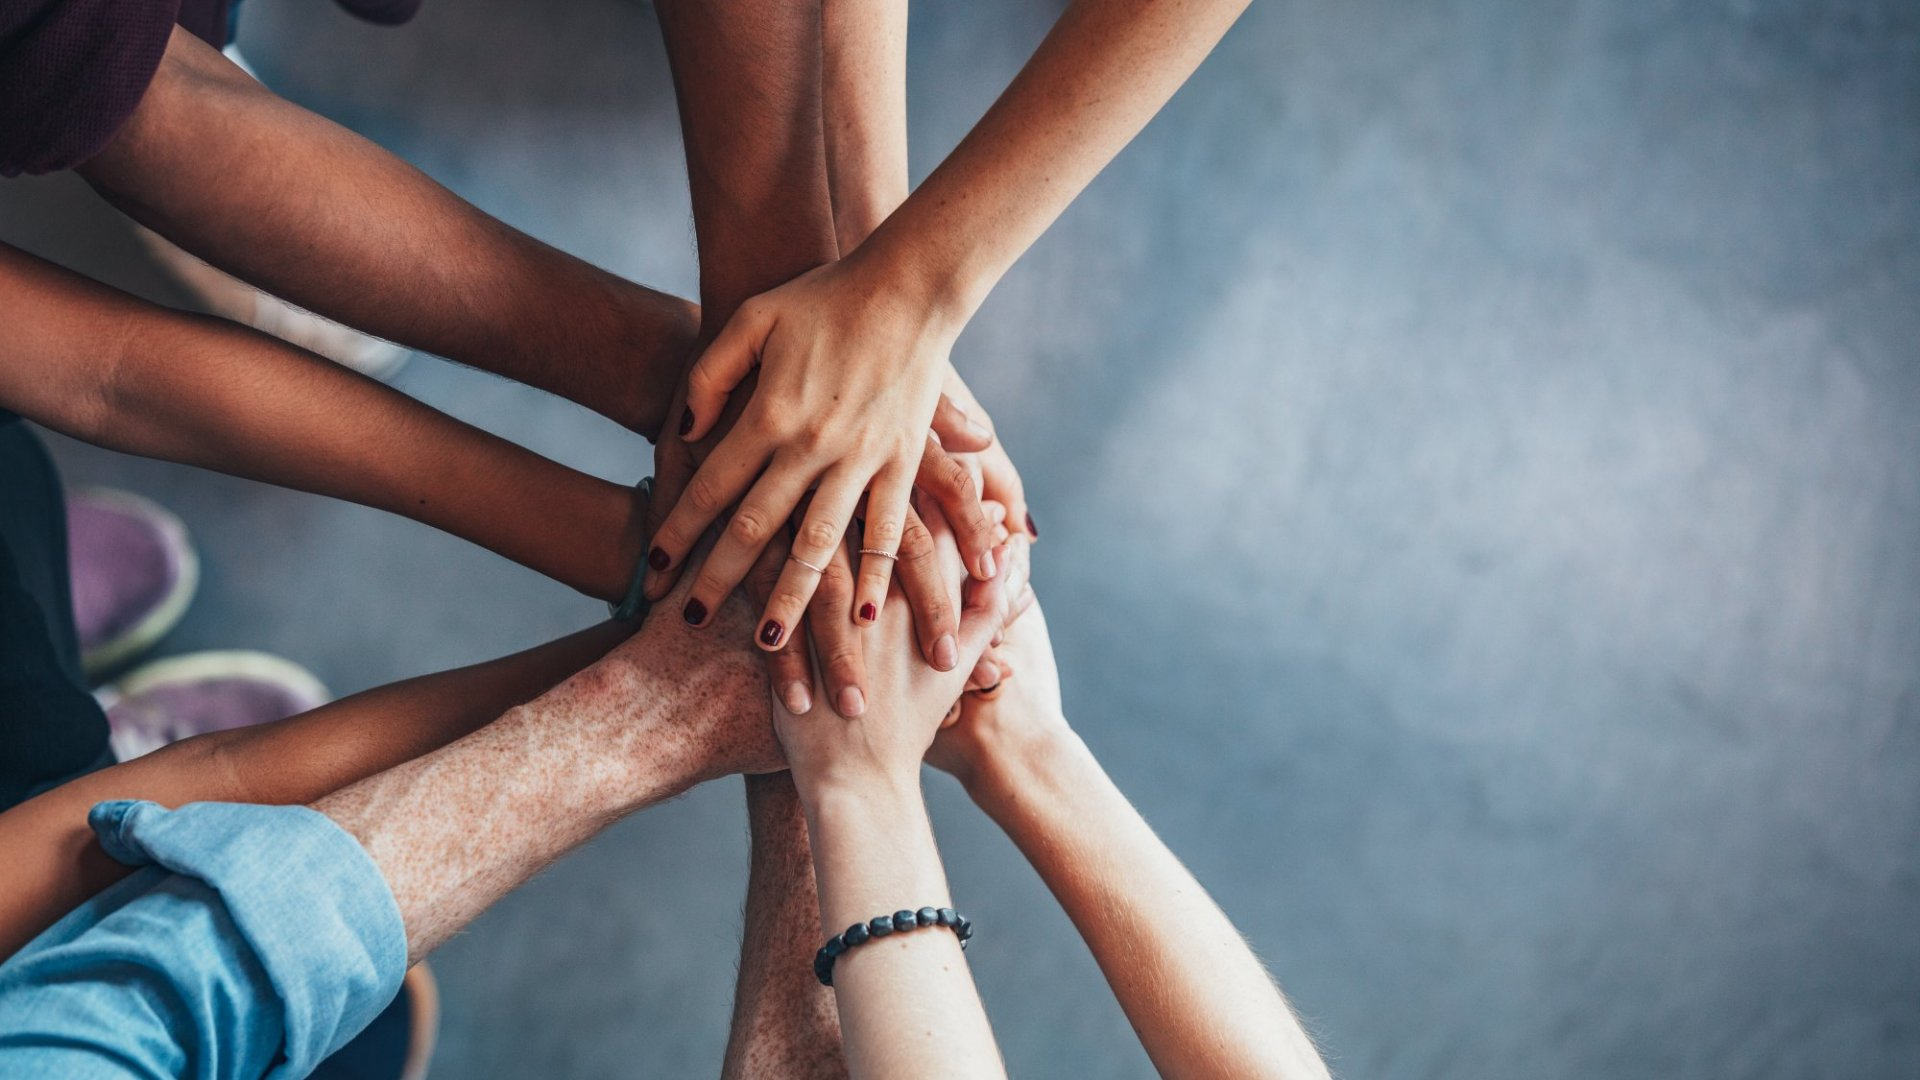 The 4 Critical Things Your Team Members Need From You